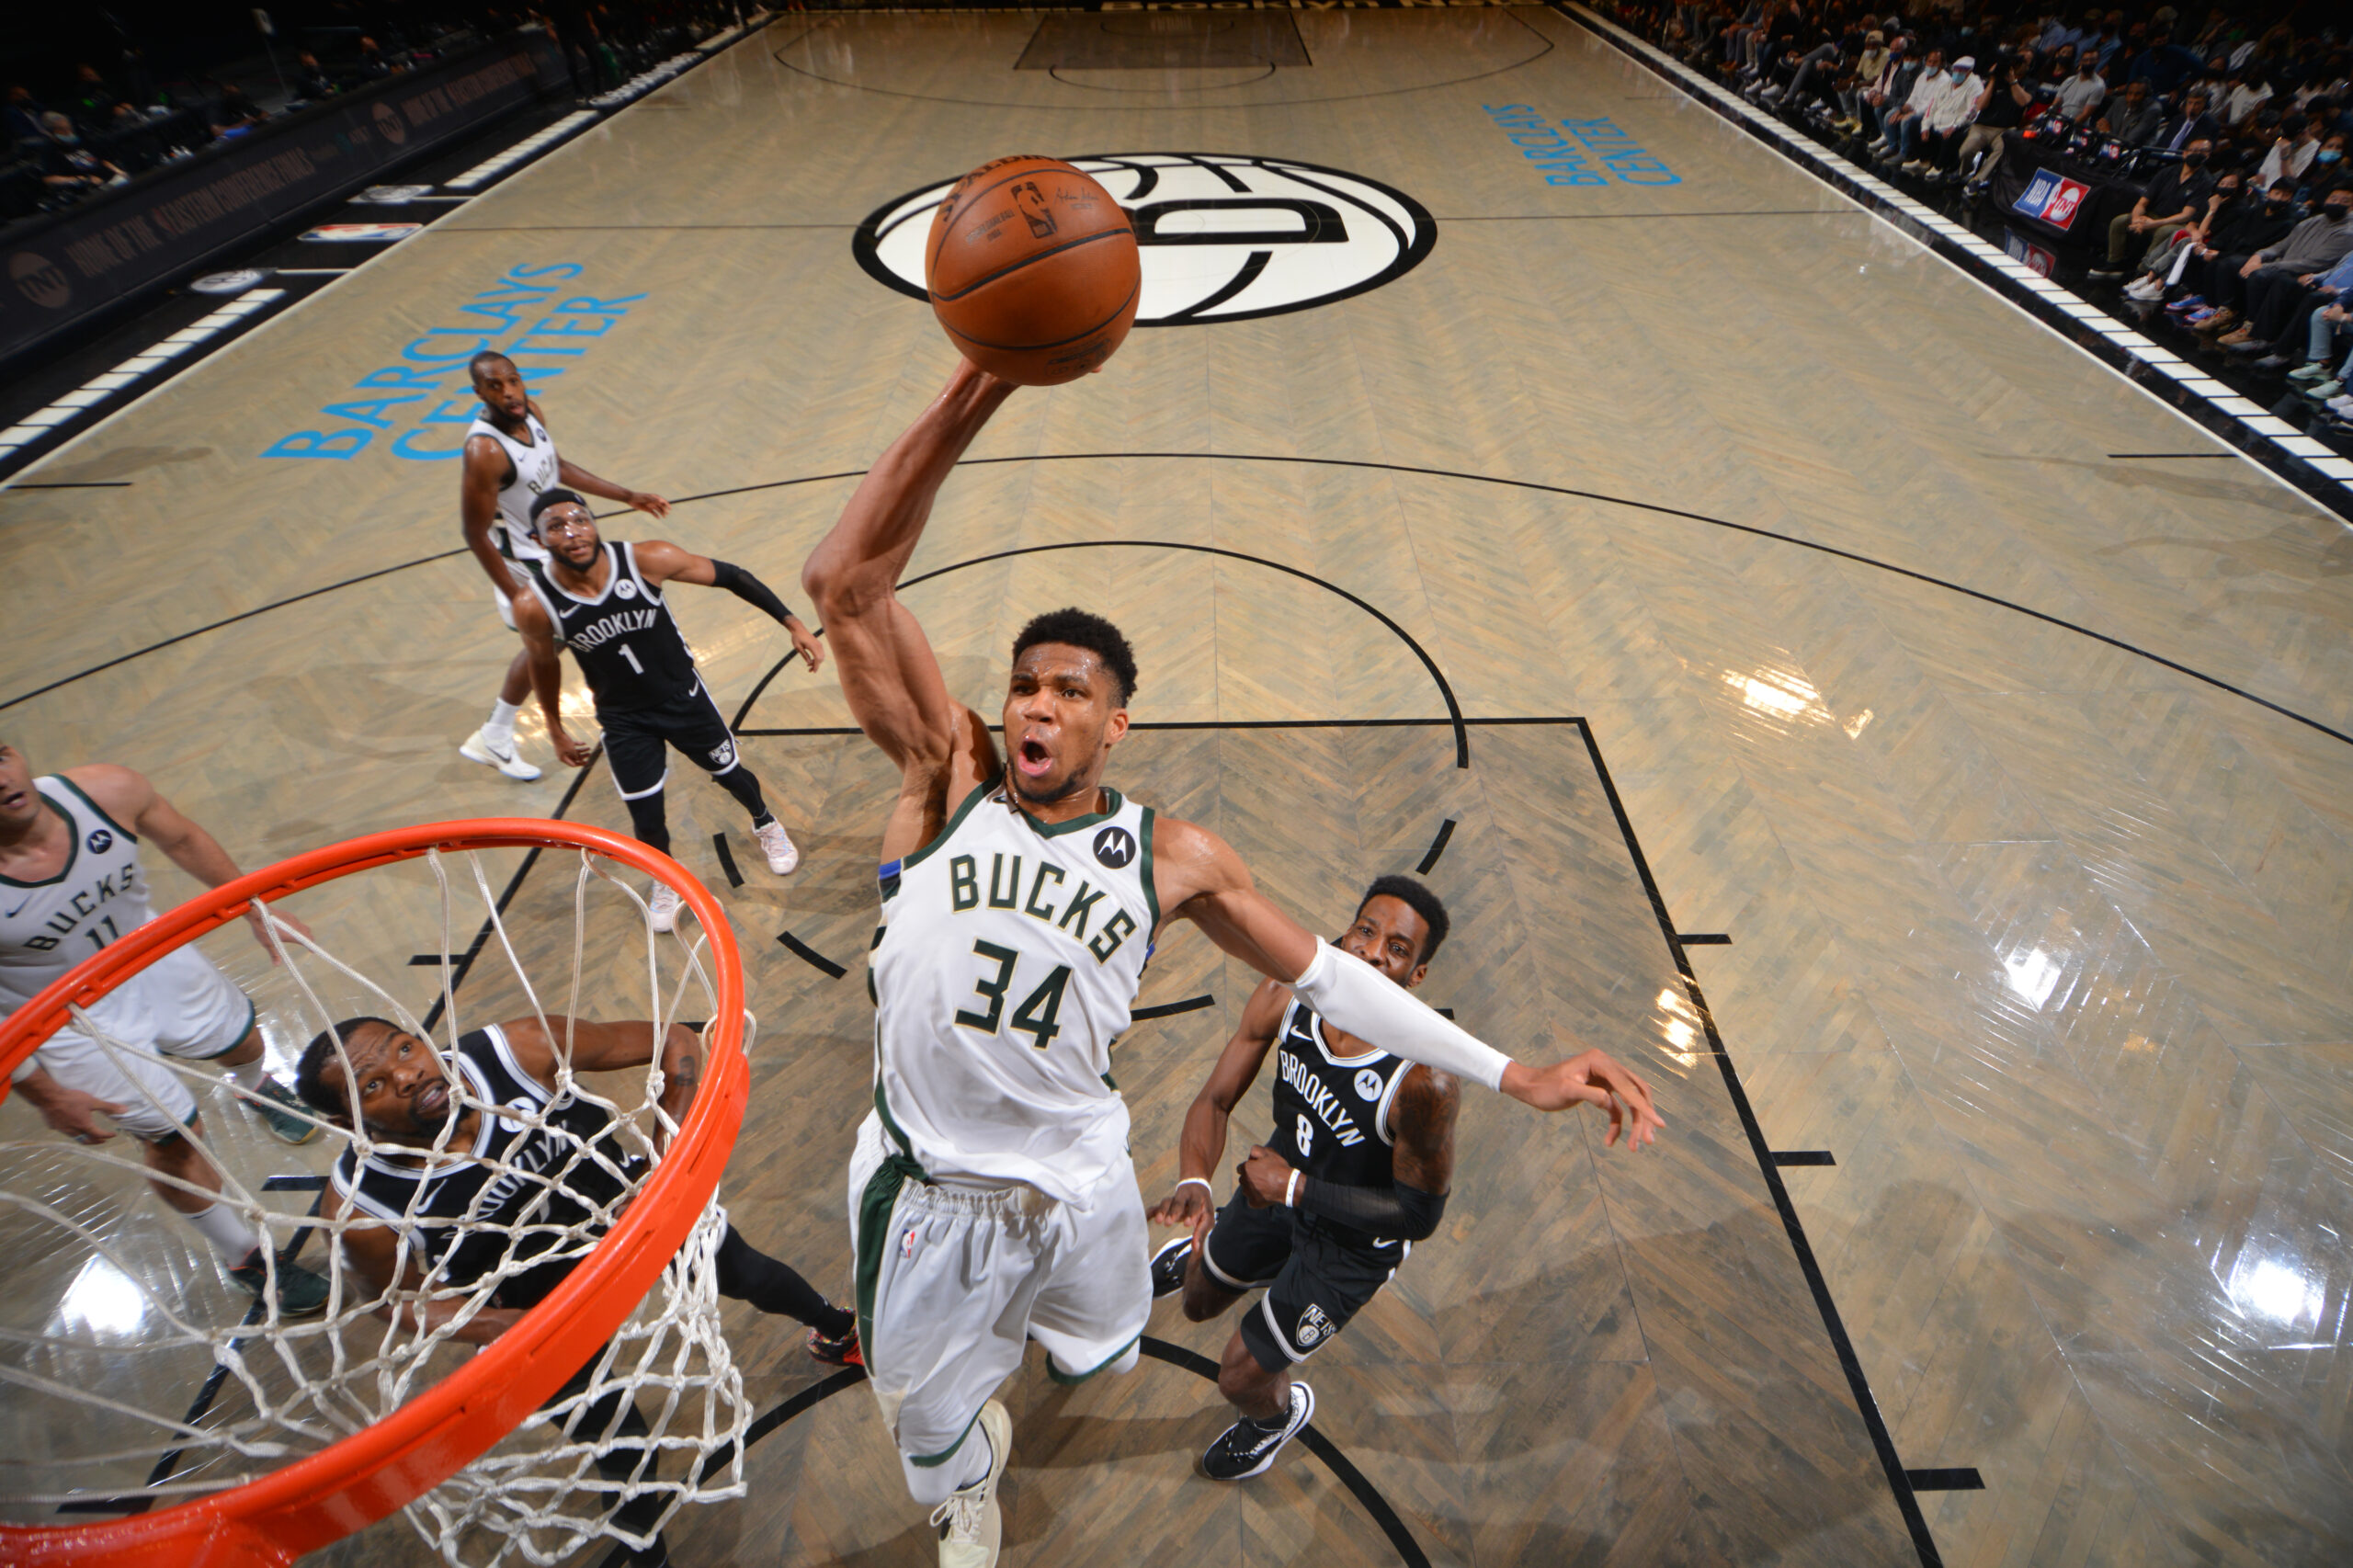 Bucks eliminate Nets with overtime road victory in Game 7